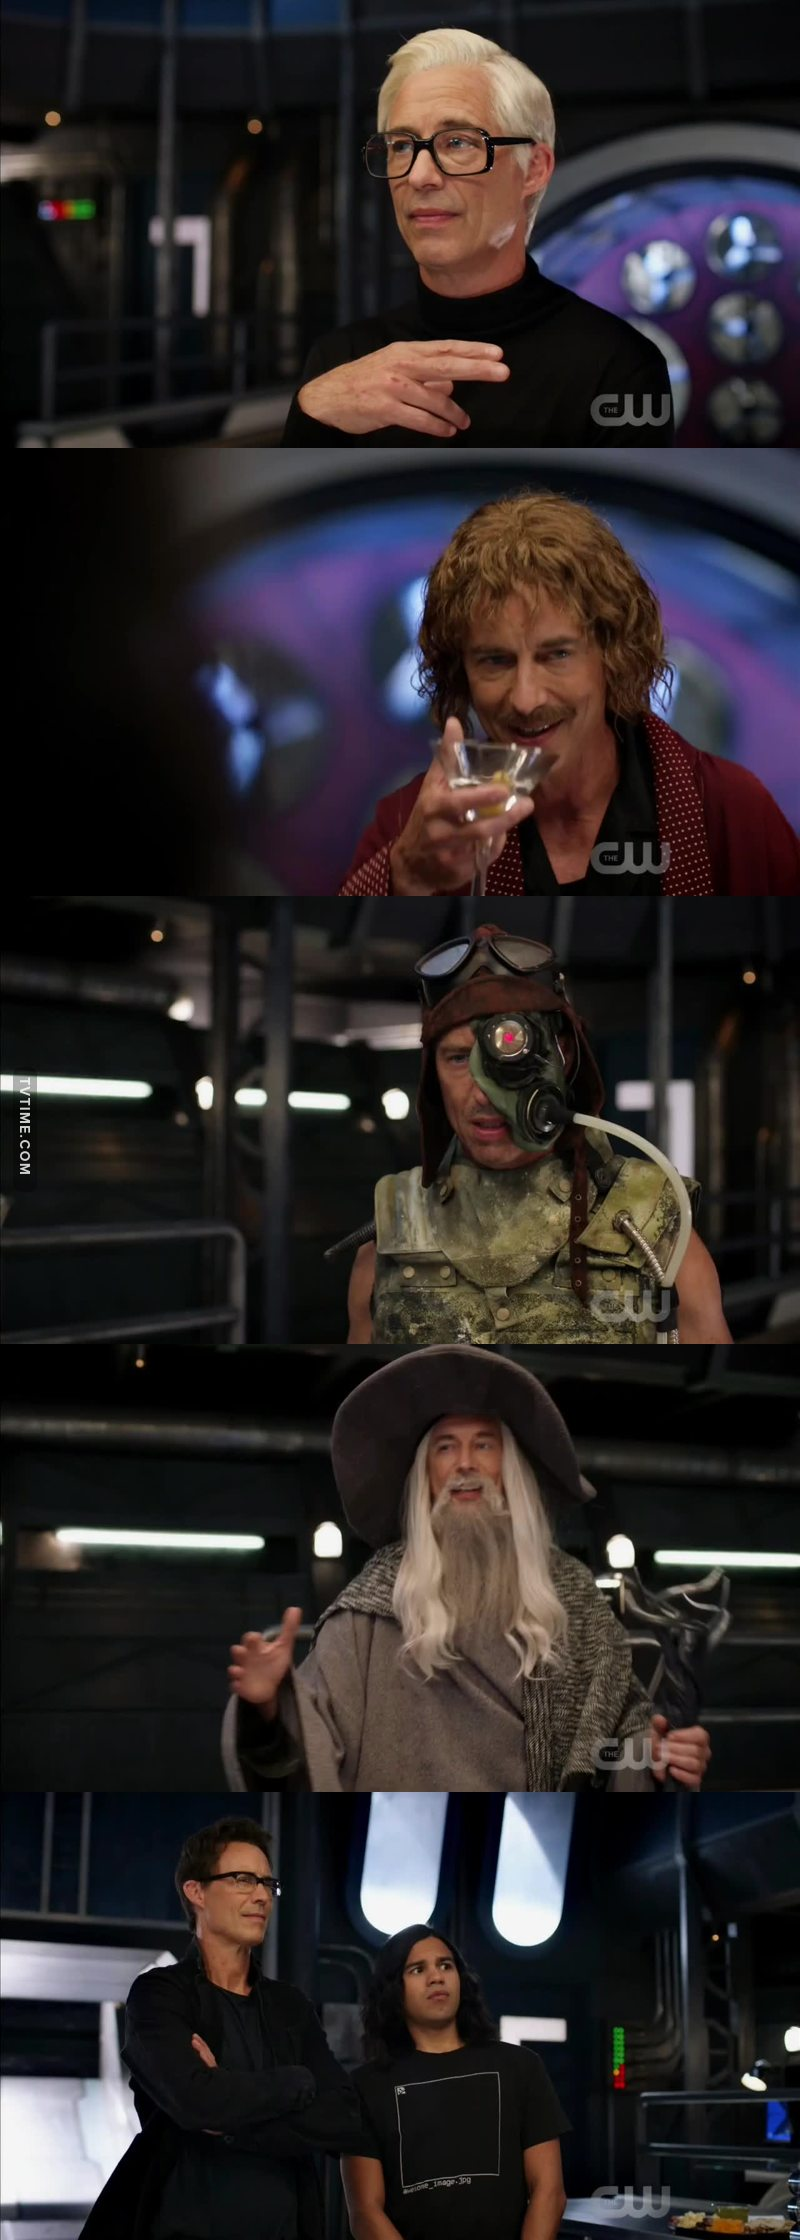 the whole episode was good but CAN WE TALK ABOUT THIS SCENE? I just love all the versions of Harrison Wells. Tom Cavanagh is so talented!!! ❤😂